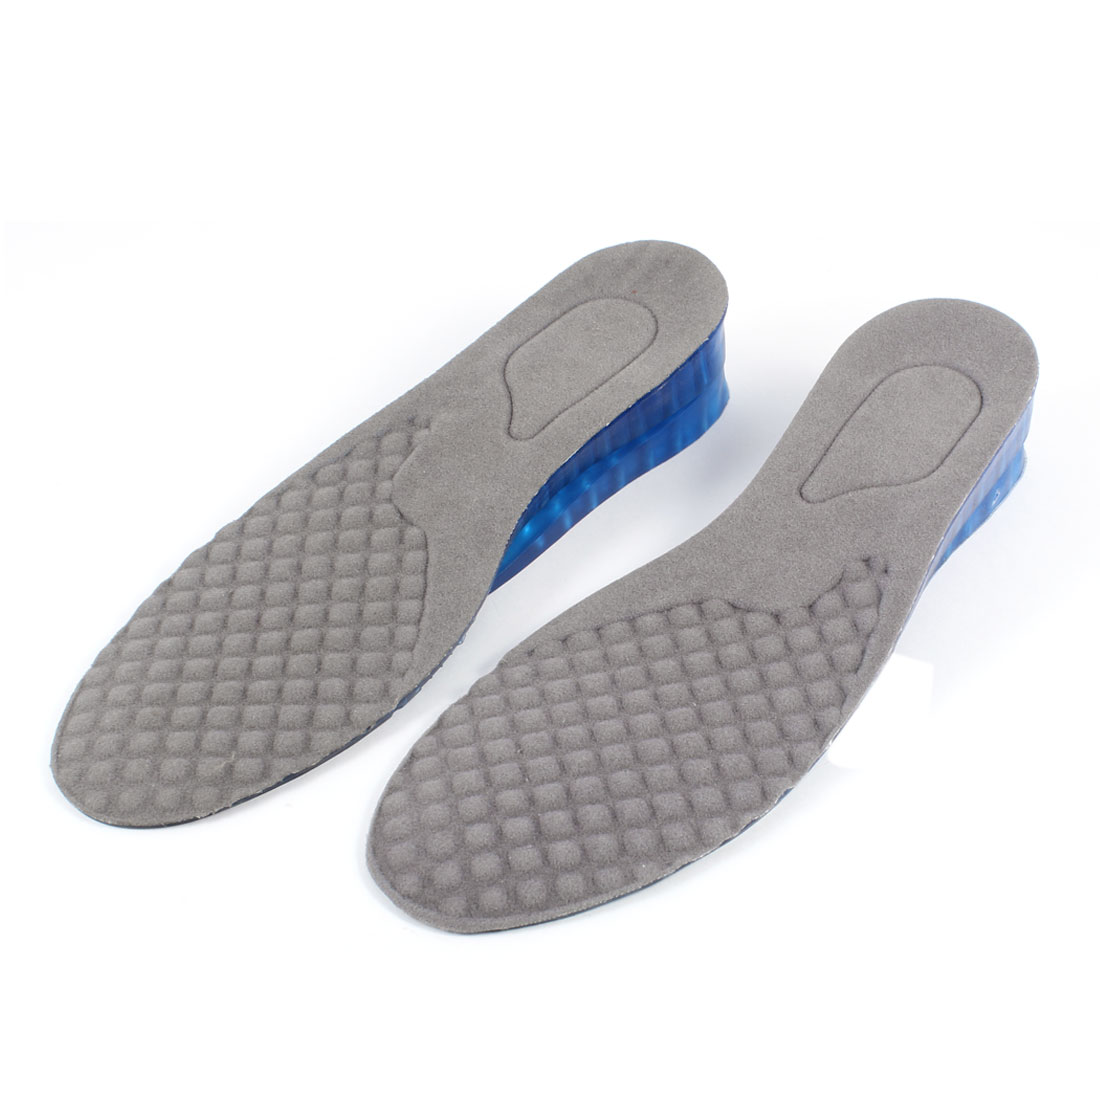 Women Blue Soft Plastic Dual Layer 1 3/4inches Height Heel Insert Insoles US 5